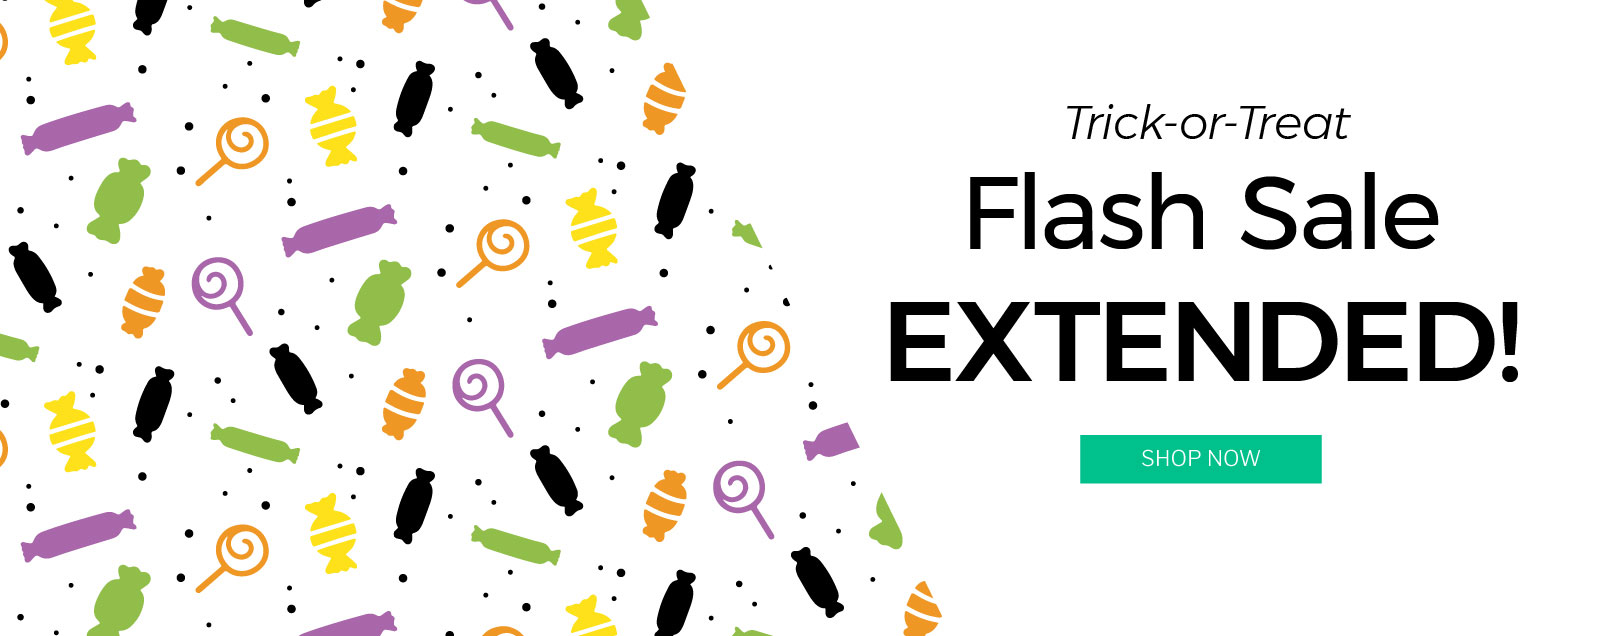 Trick-or-Treat Flash Sale Extended